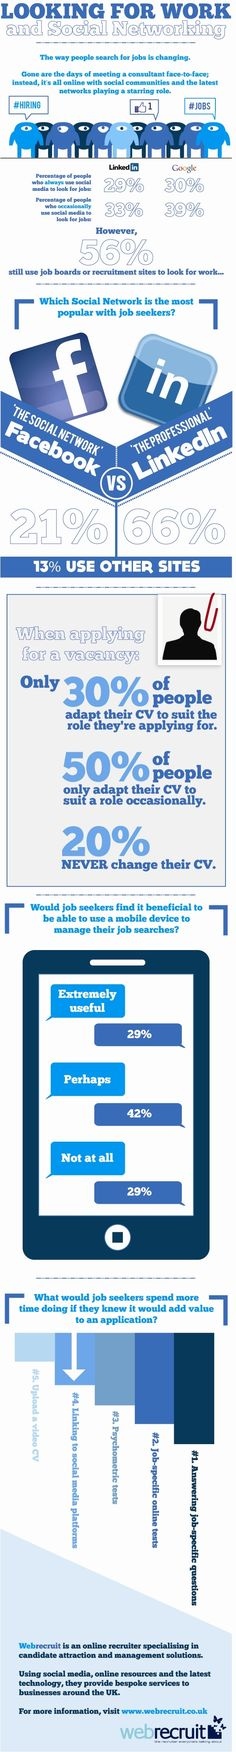 Who's using #socialmedia to find a job? #infographic  http://www.roehampton-online.com/?ref=4231900  #careers #career #jobs #jobsearch #recruitment #work #employment